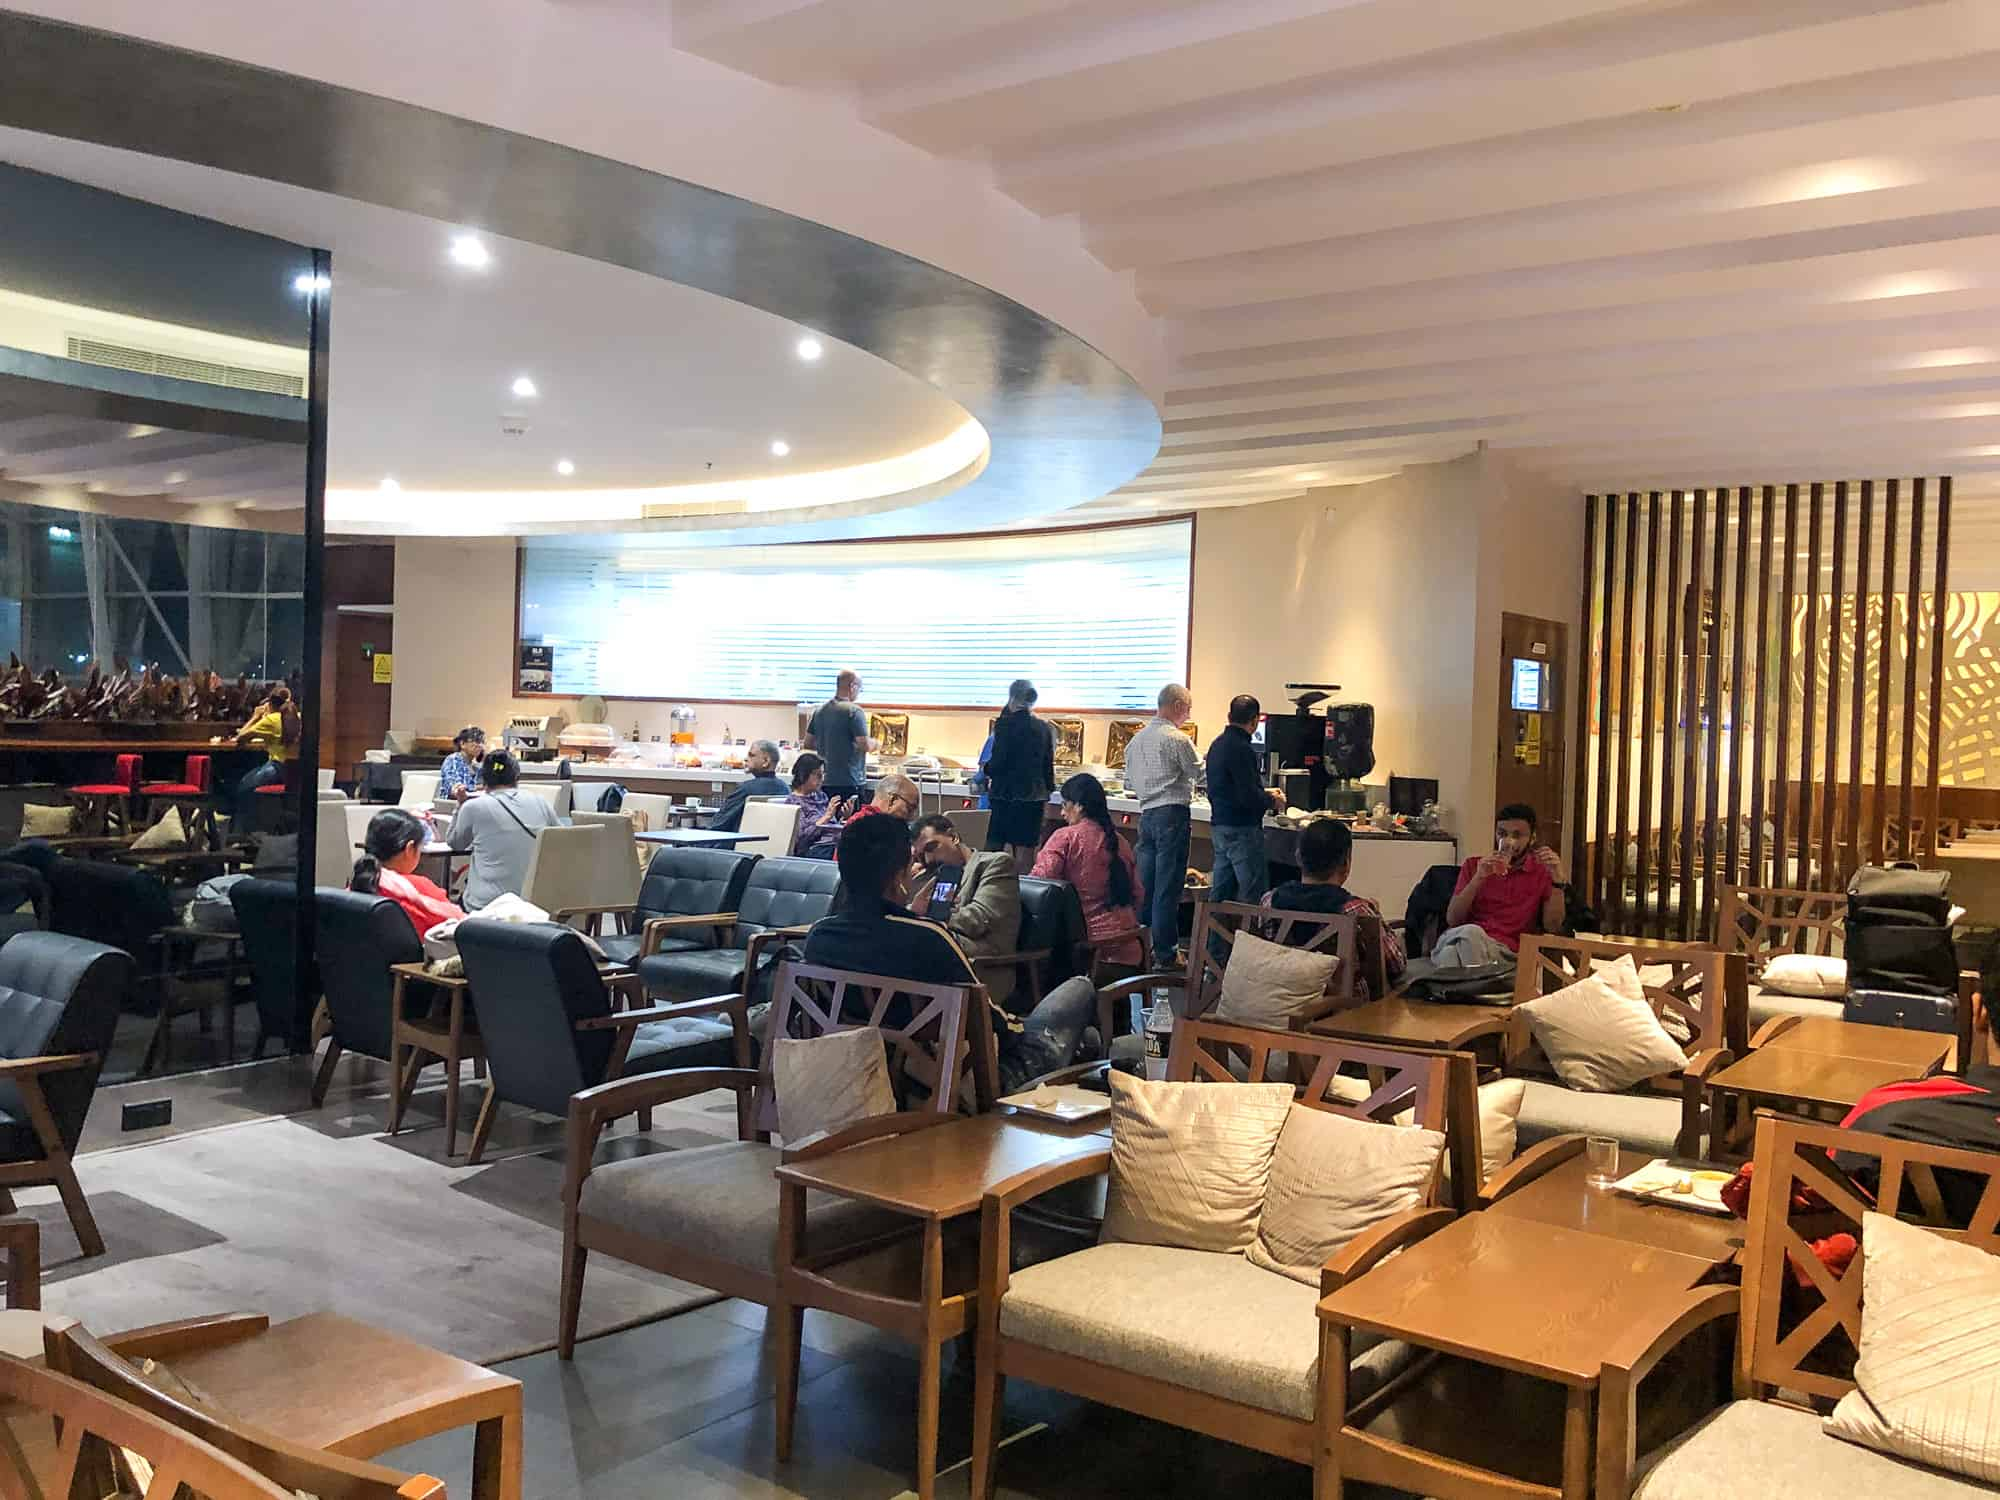 Bangalore Airport Bengaluru Business and First Class Lounge Interior